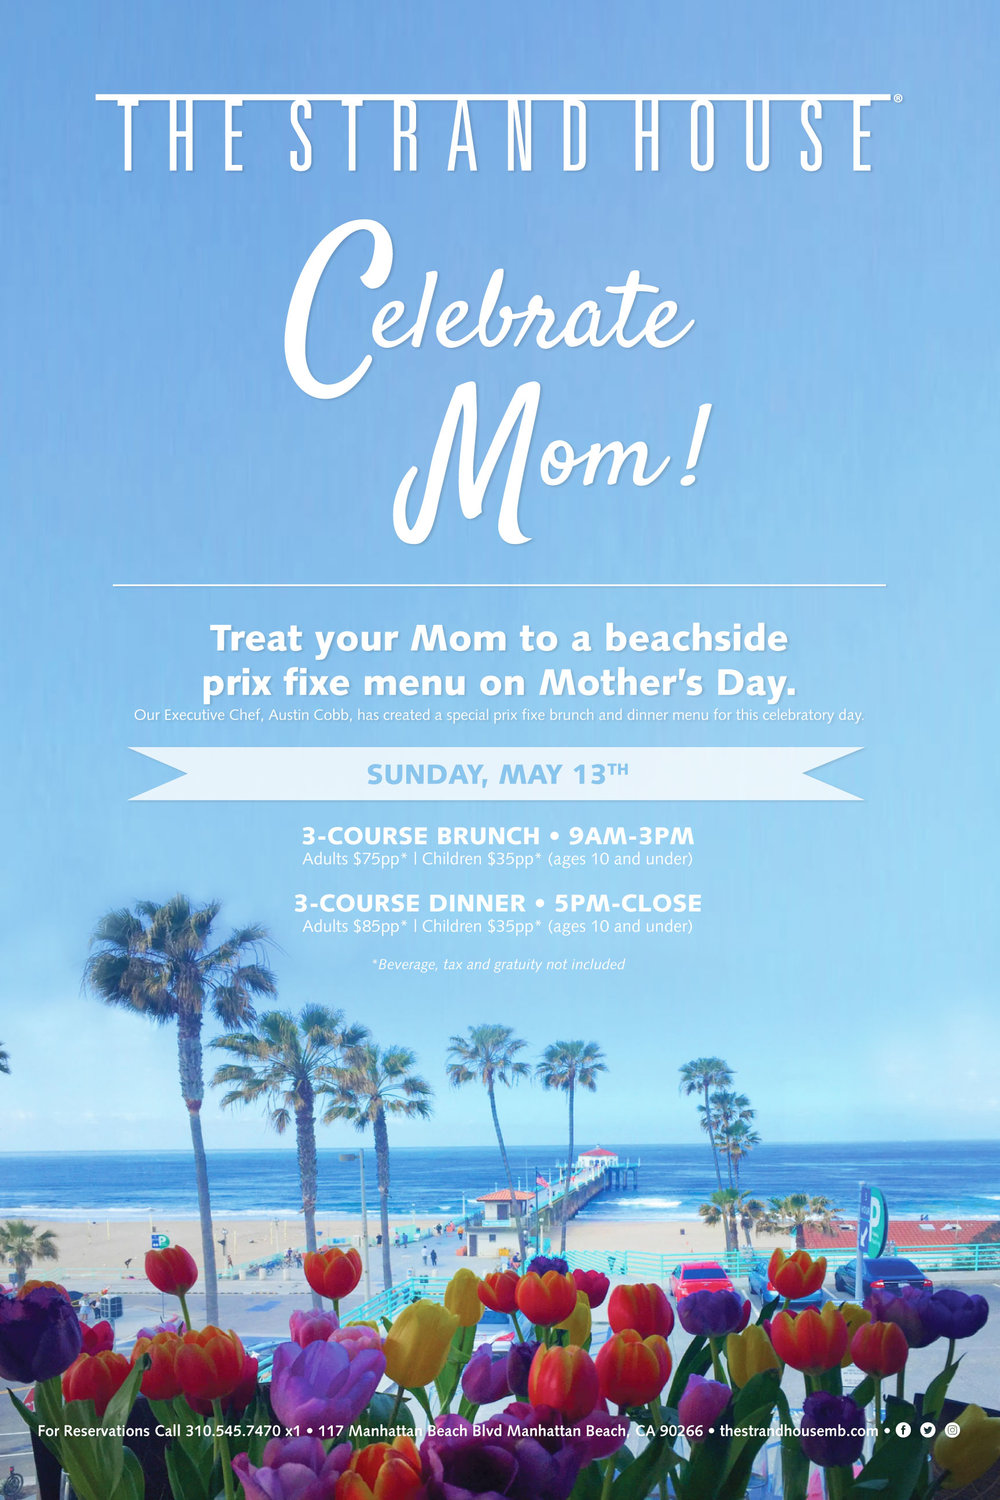 Treat your amazing Mom to a beachside prix fixe brunch on Mother's Day. Our Executive Chef, Austin Cobb, has created special prix fixe brunch and dinner menus for this celebratory day that will be sure to wow Mom!Enjoy sweeping views of Manhattan Beach Pier while indulging in three decadent courses, with menu items like fresh oysters, truffle cheese tart, crispy pork belly, lobster Benedict, house-made Bucatini pasta, grilled Filet Mignon and much more!For Reservations Call 310.545.7470 x1• • • • • • • • • • • • • • • • • • • • • • • • • • • • • • •3-COURSE BRUNCH • 9AM-3PMAdults $75pp* | Children $35pp* (ages 10 and under)3-COURSE DINNER • 5PM-CLOSEAdults $85pp* | Children $35pp* (ages 10 and under)*Beverage, tax and gratuity not included -